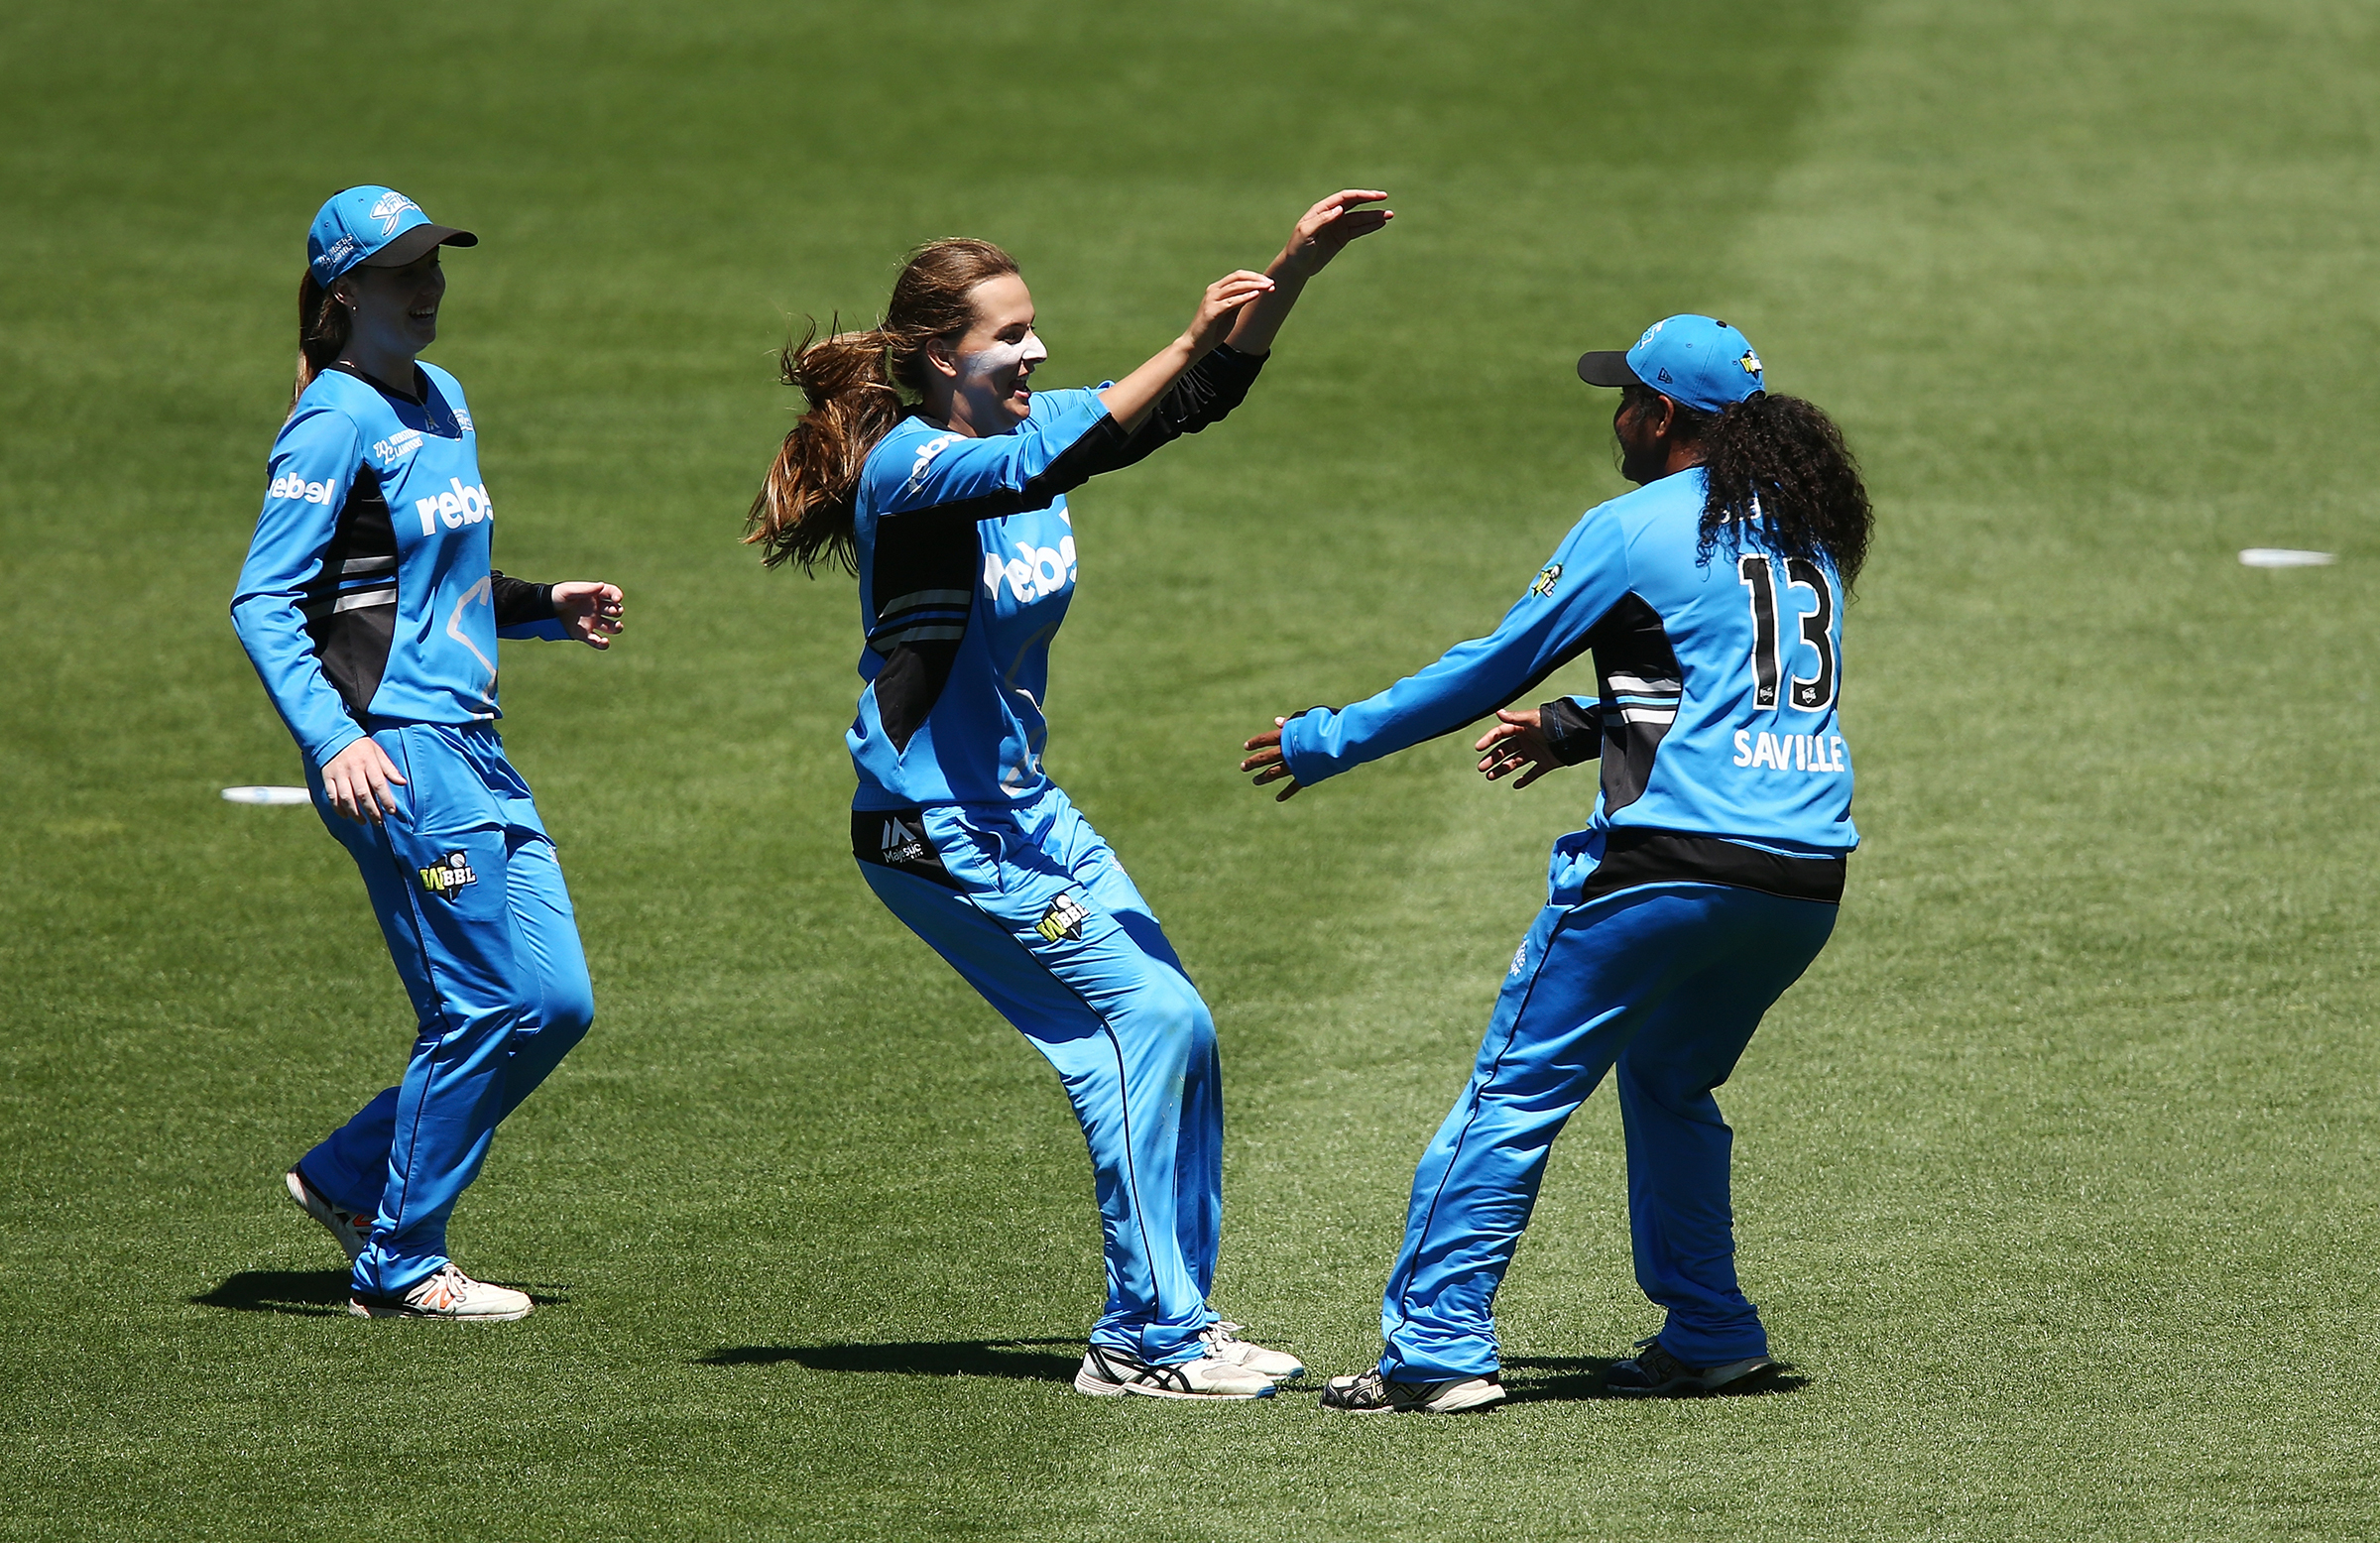 Alex Price (centre) celebrates the first WBBL catch of Saville (right) // Getty